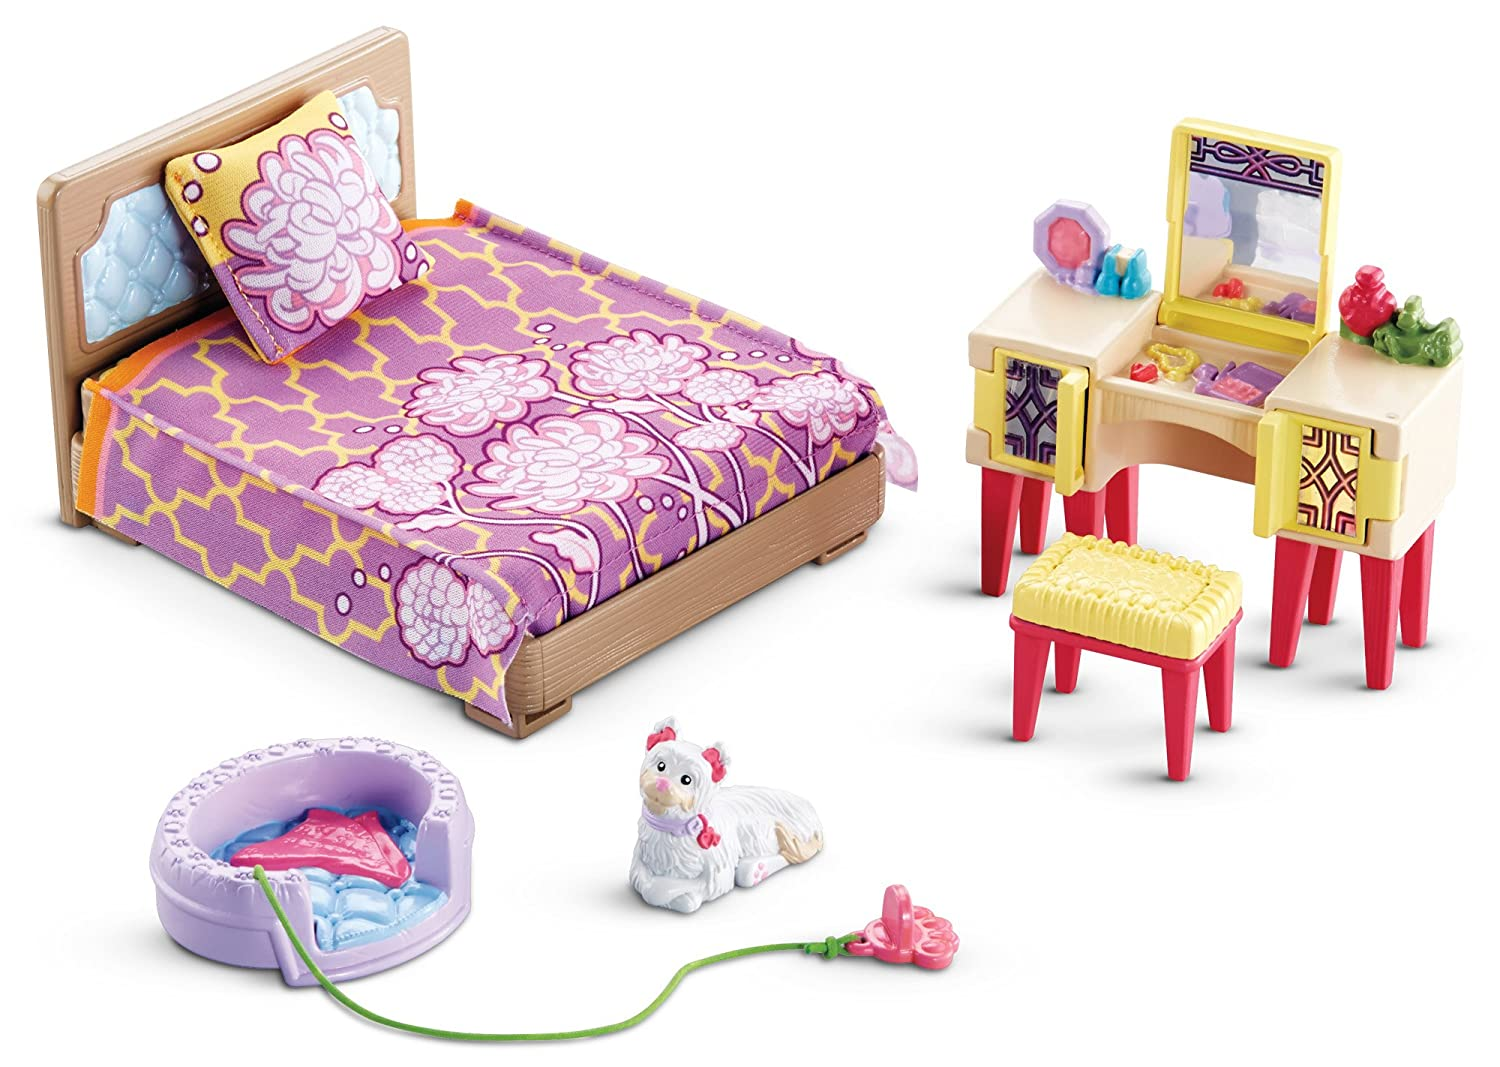 Amazon.com: Fisher Price Loving Family Parents' Bedroom: Toys & Games